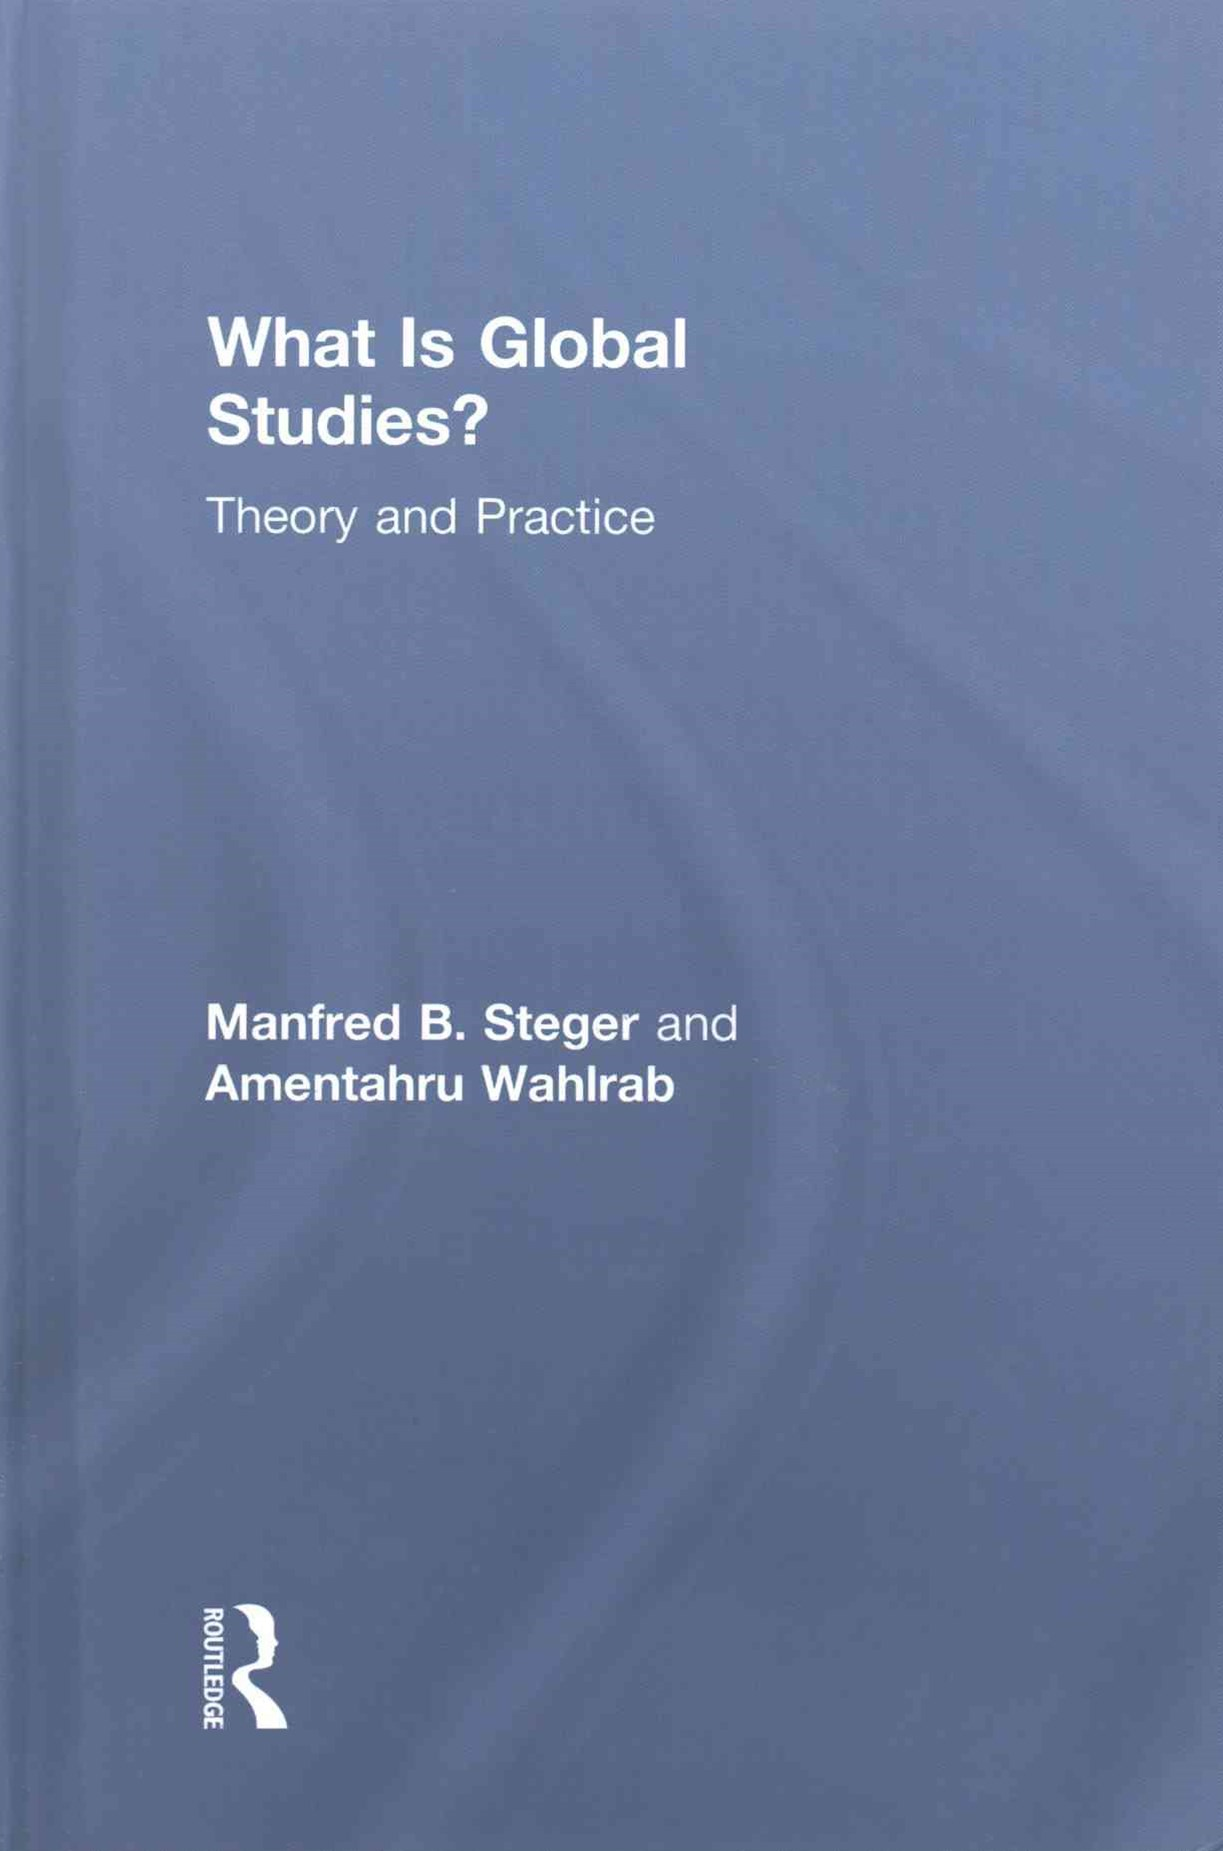 Introduction to Global Studies